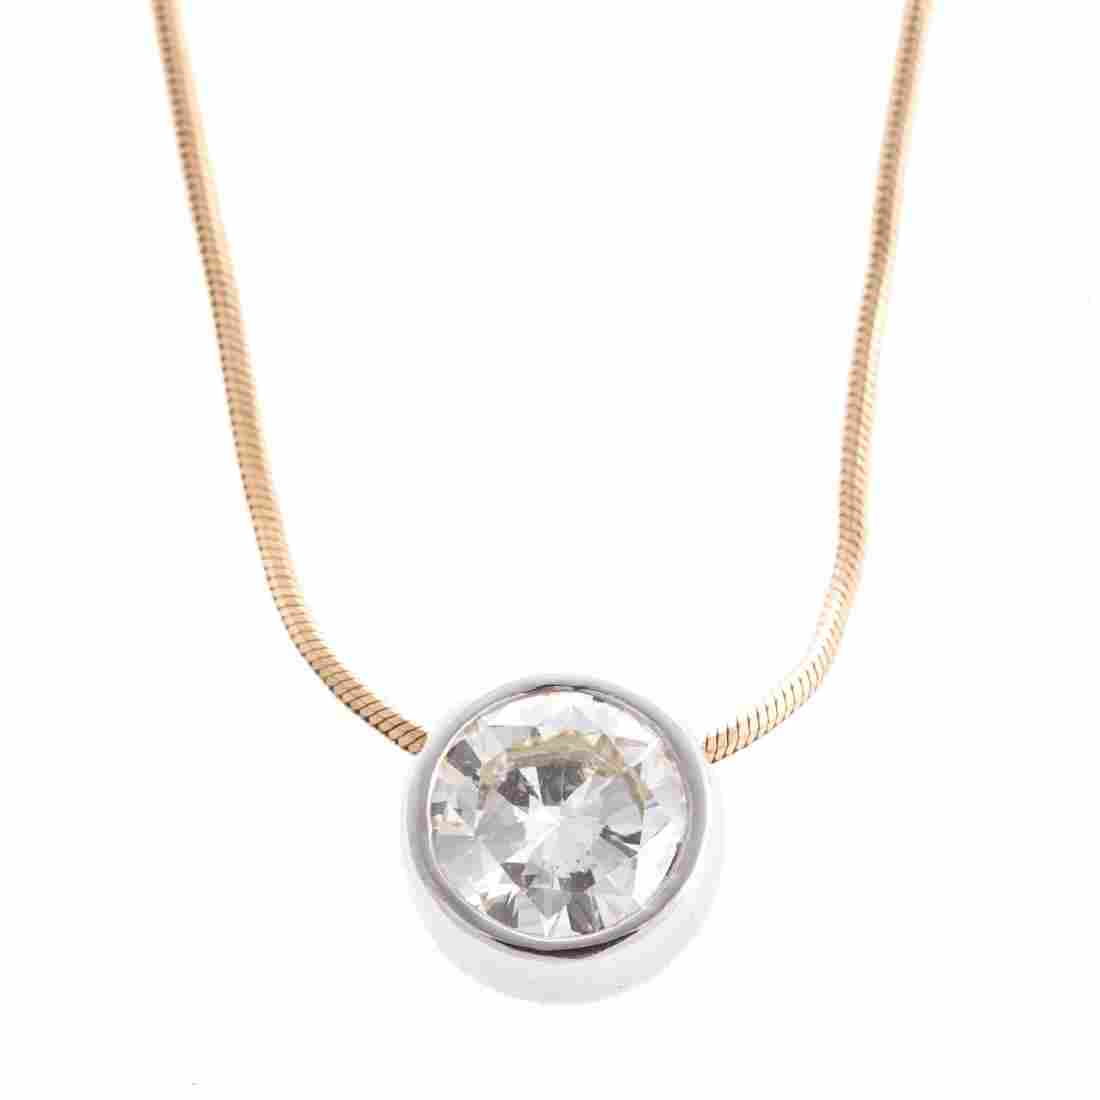 A Lady's 2.50 ct. Diamond Pendant in 14K Gold